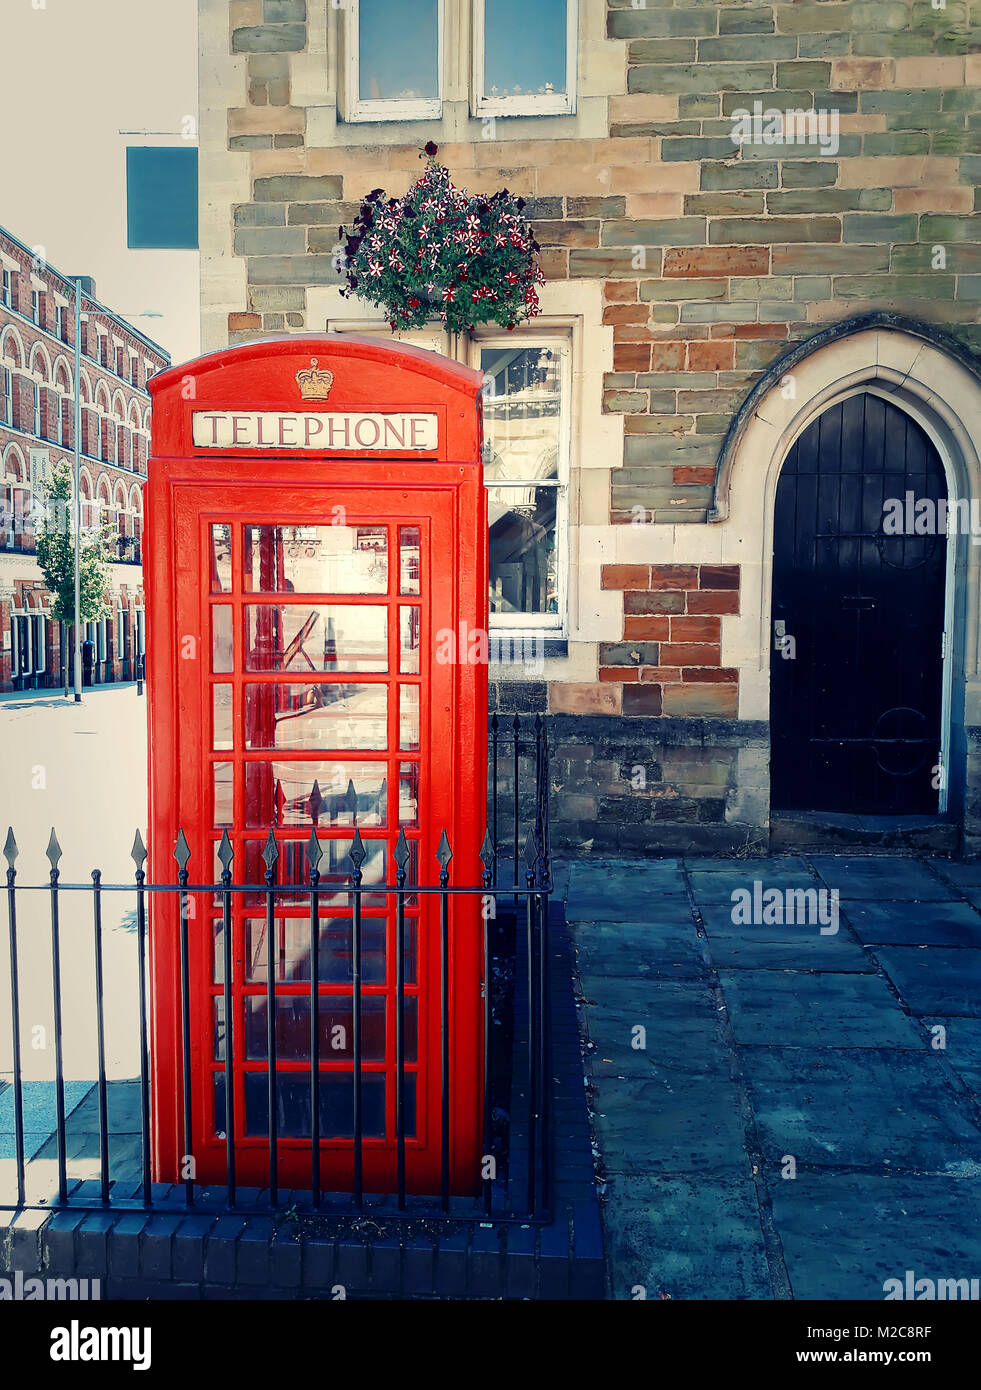 Traditional british red phone booth on the street near Guidhall, Northampton, England. - Stock Image